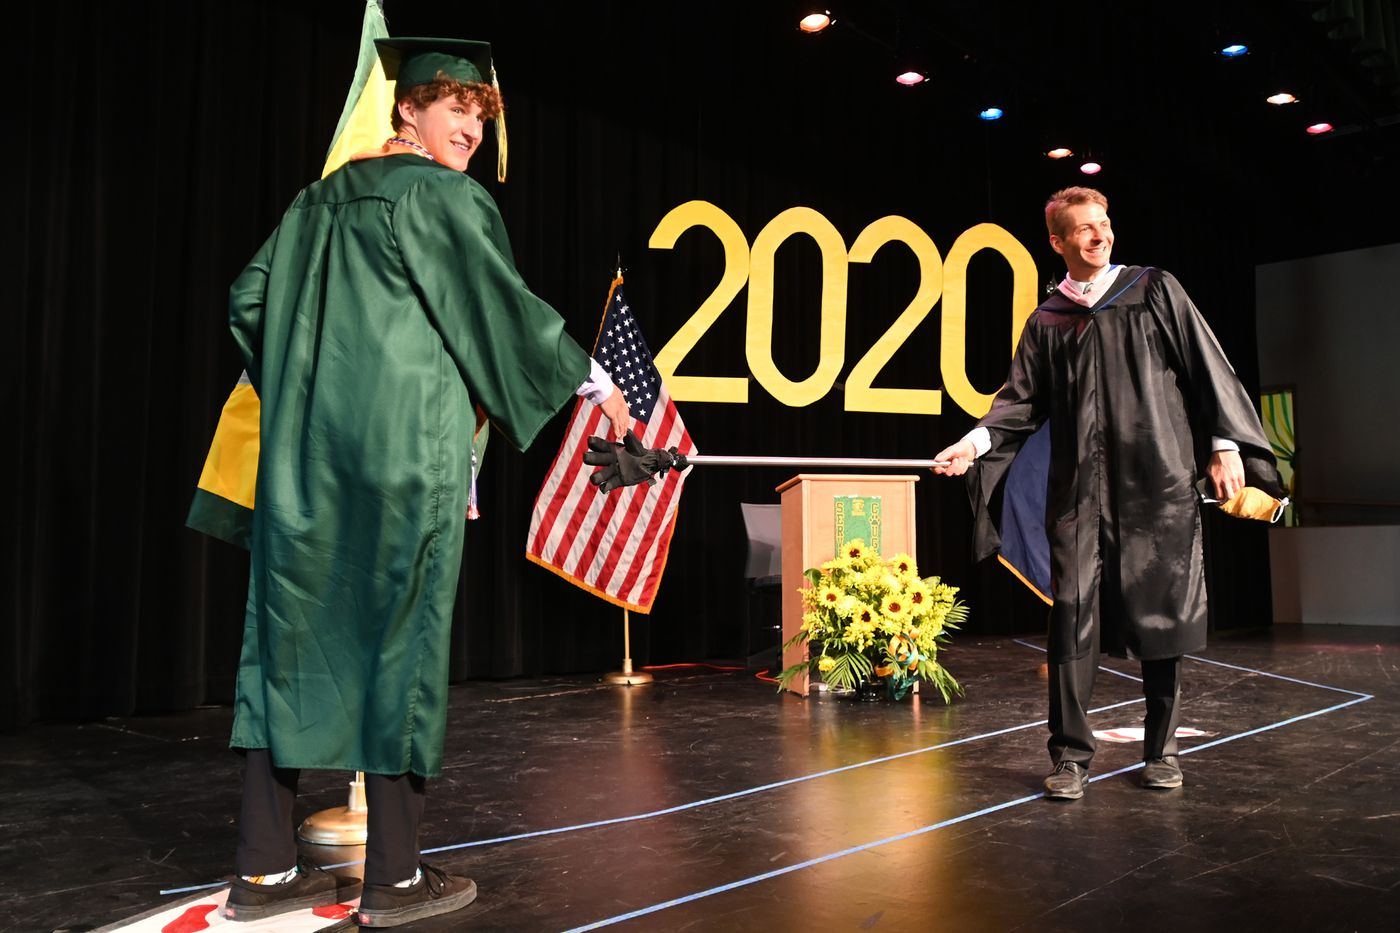 Service High School graduating senior Carter Christopherson pretends to shake hands with principal Frank Hauser while keeping social distancing after he walked across the stage on Tuesday, May 19, 2020. Christopherson, who was named captain of the soccer team for a season that never happened because of the COVID-19 pandemic, will be attending University of Colorado, Colorado Springs. (Bill Roth / ADN)